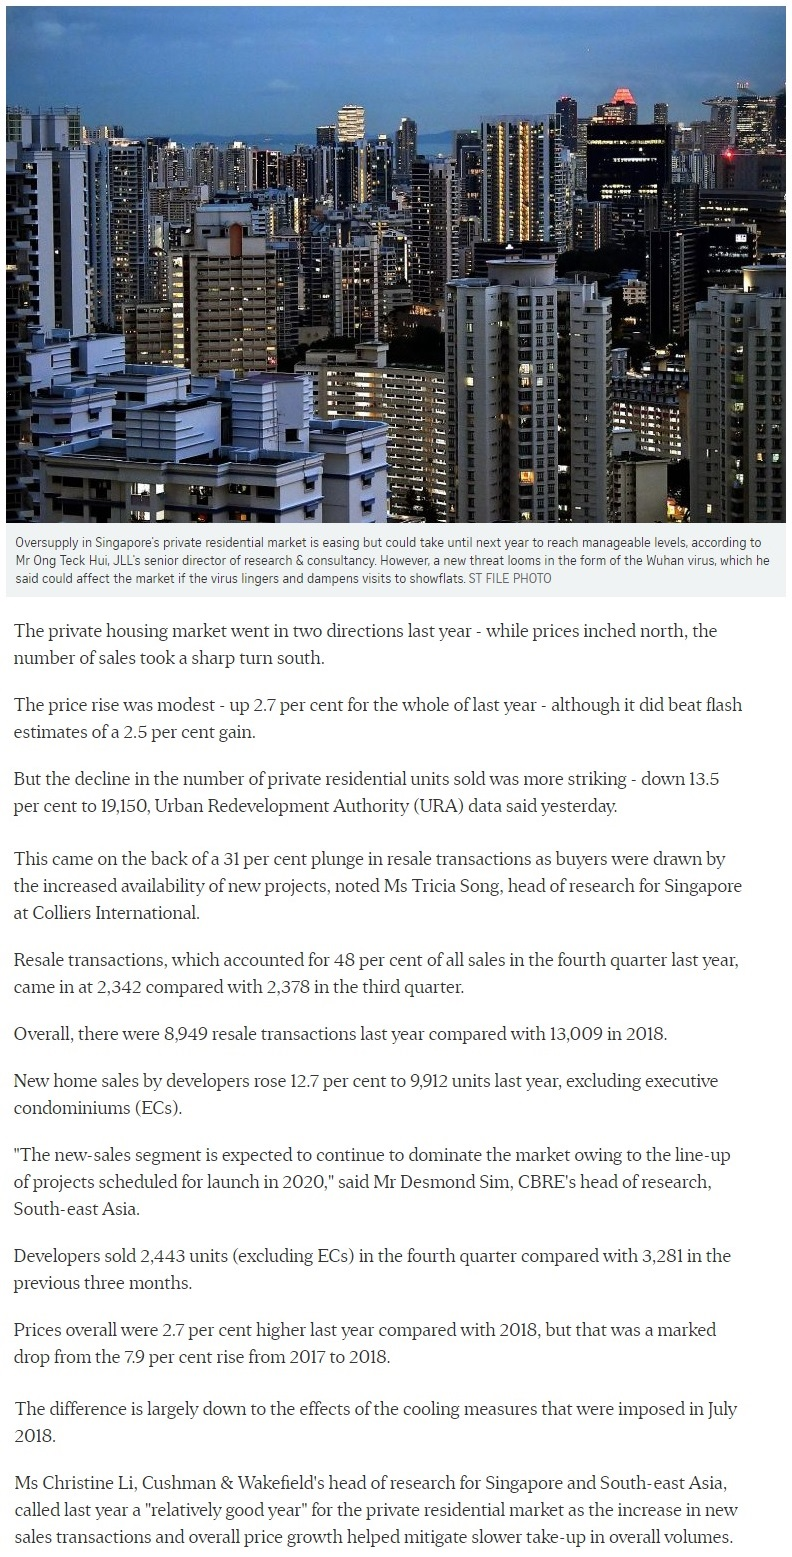 Clavon - Singapore private home prices inch up 2.7% for 2019 Part 1